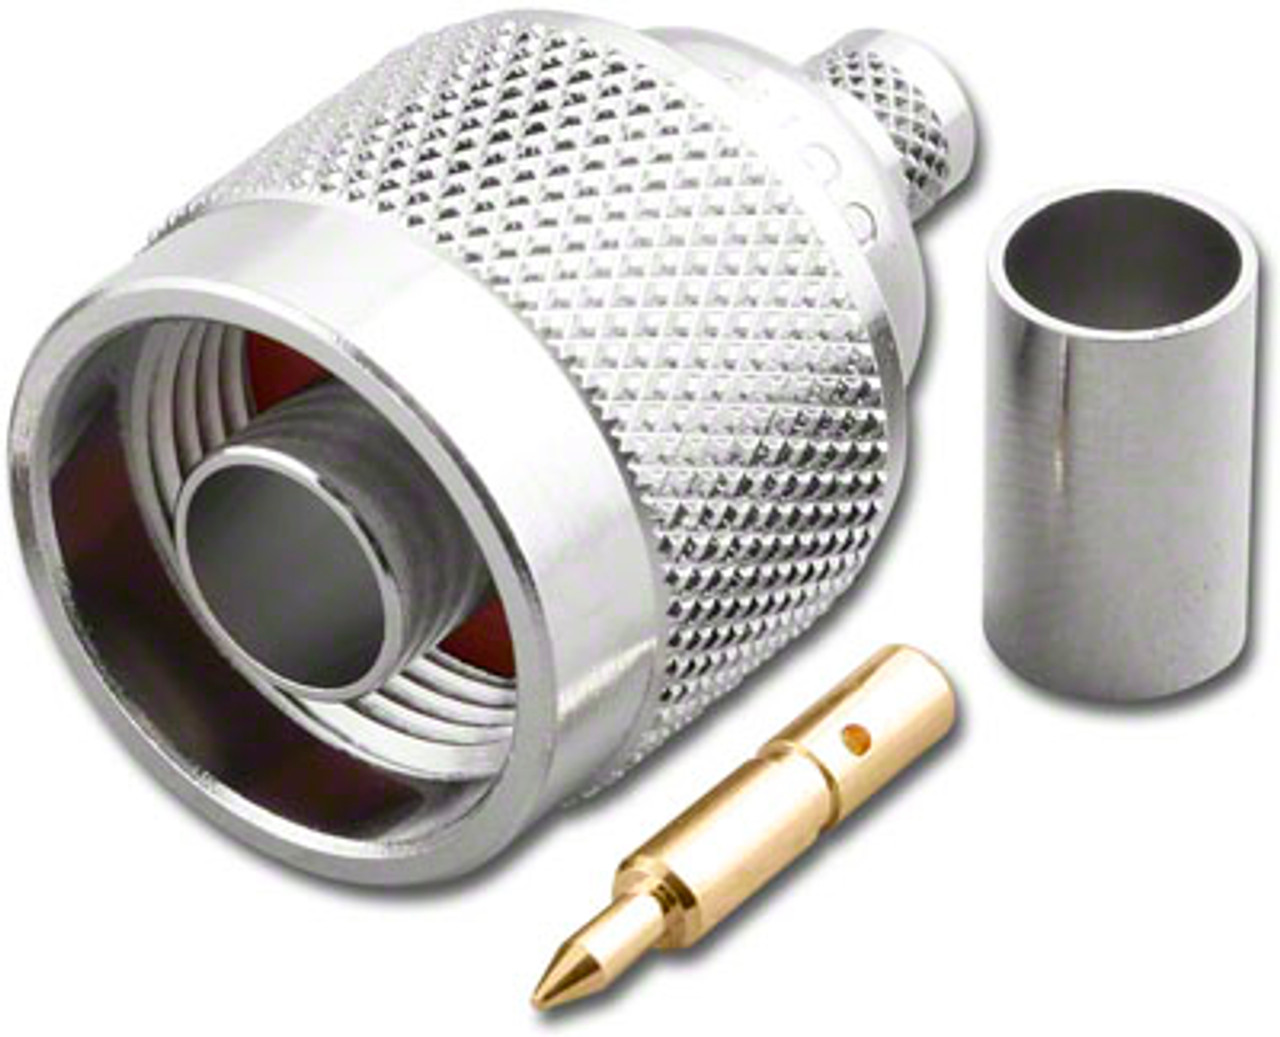 RFN-3629-L240 Type N-Male Plug Coaxial Crimp Connector for LMR-240